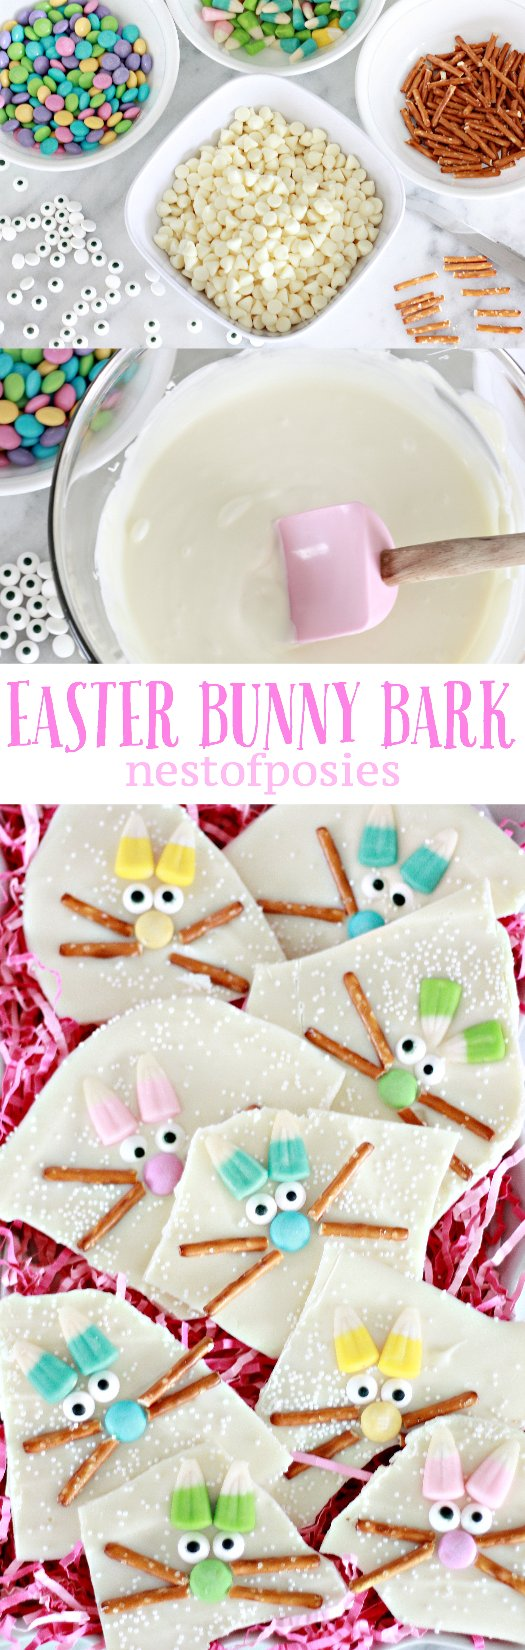 Easter Bunny Bark! So fun & made in minutes